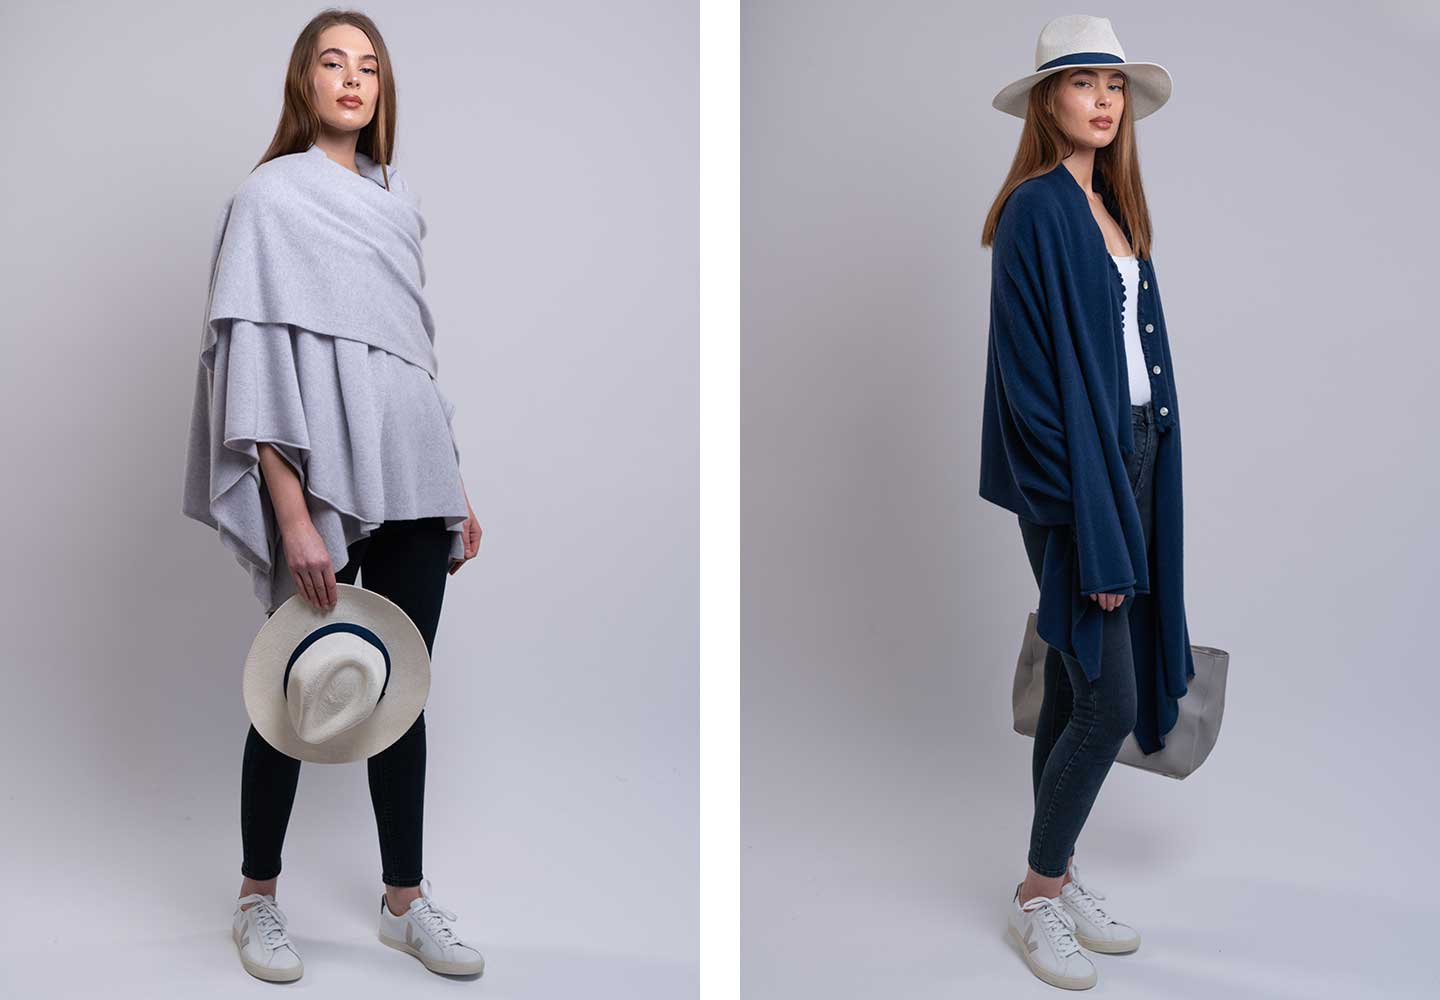 grey and navy cashmere wrap worn stylishly over cashmere knitwear